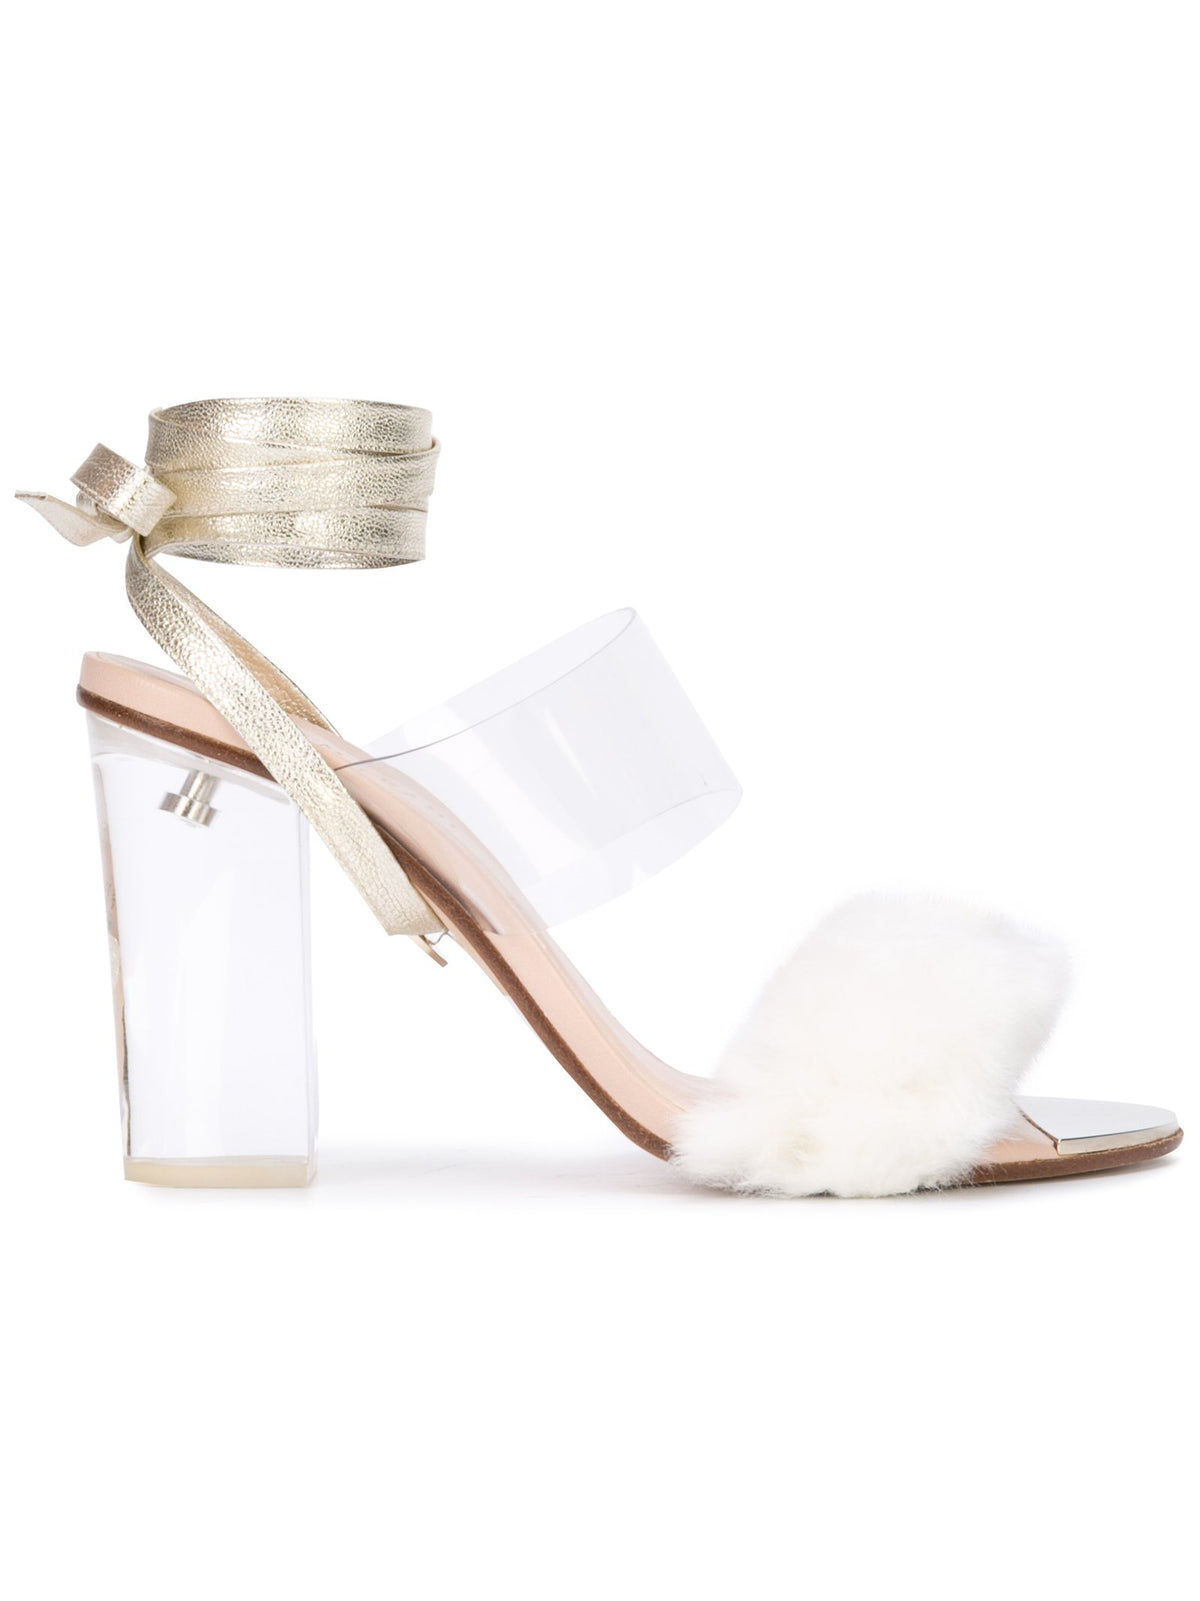 Sabrina Sandal - White faux fur with pvc, acrylic heel and removable wraps. Profile View